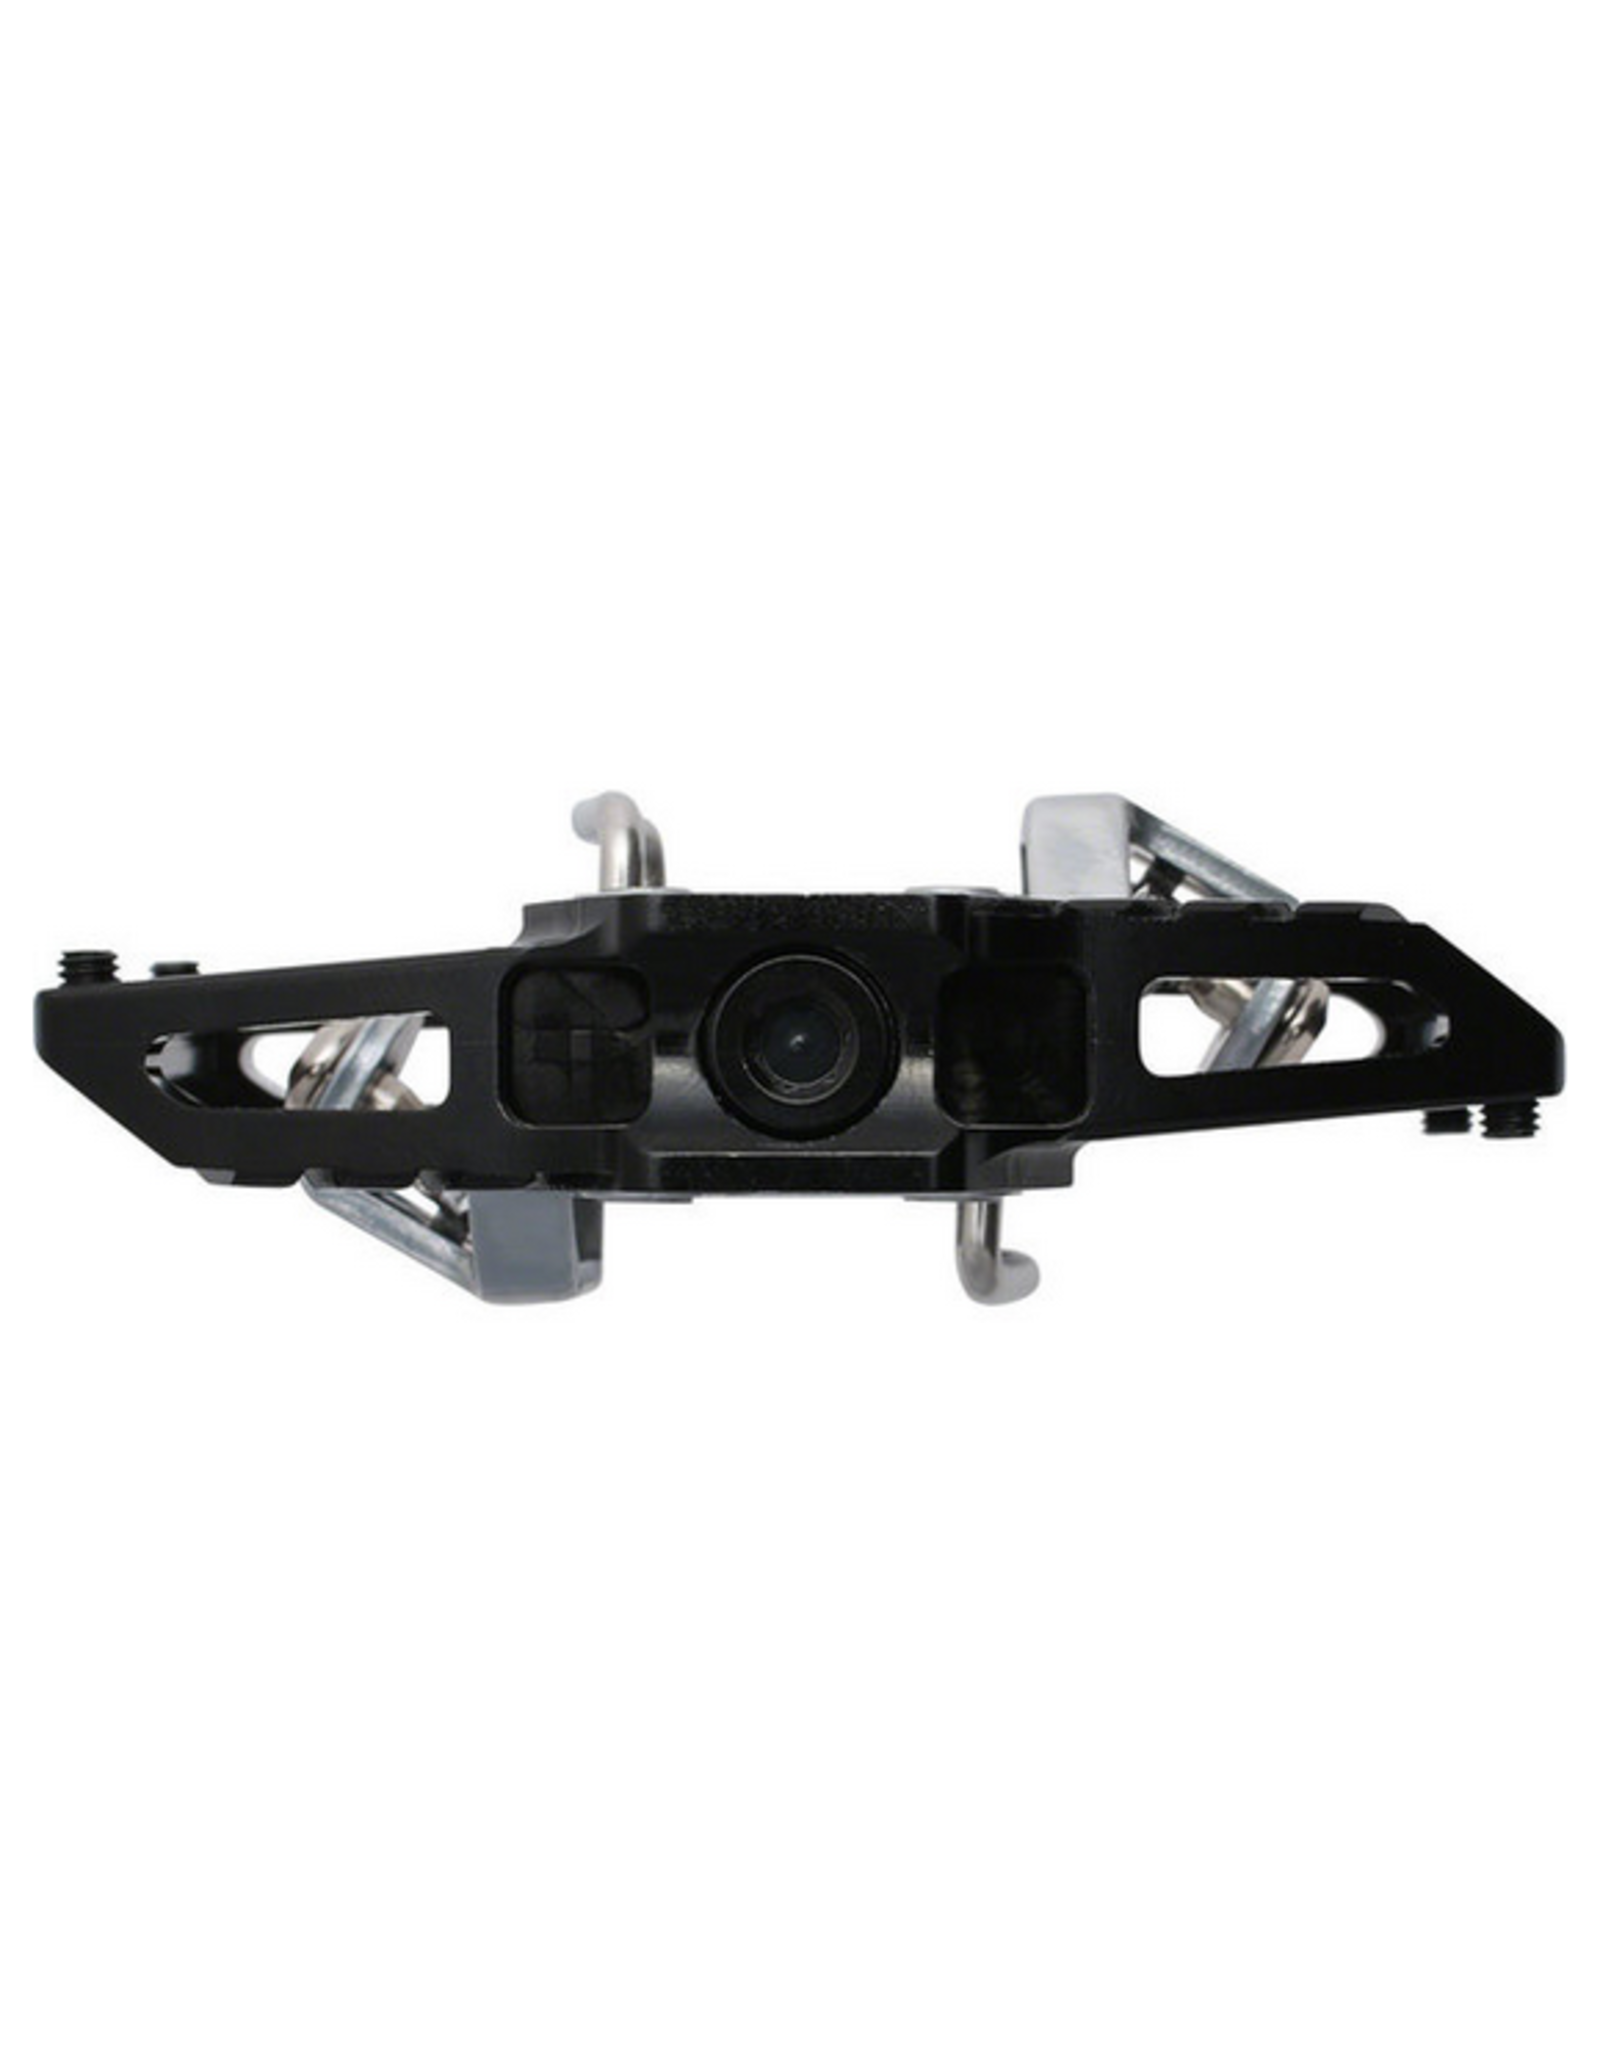 """HT Components HT T1 Enduro Race Pedals - Dual Sided Clipless with Platform, Aluminum, 9/16"""", Black"""